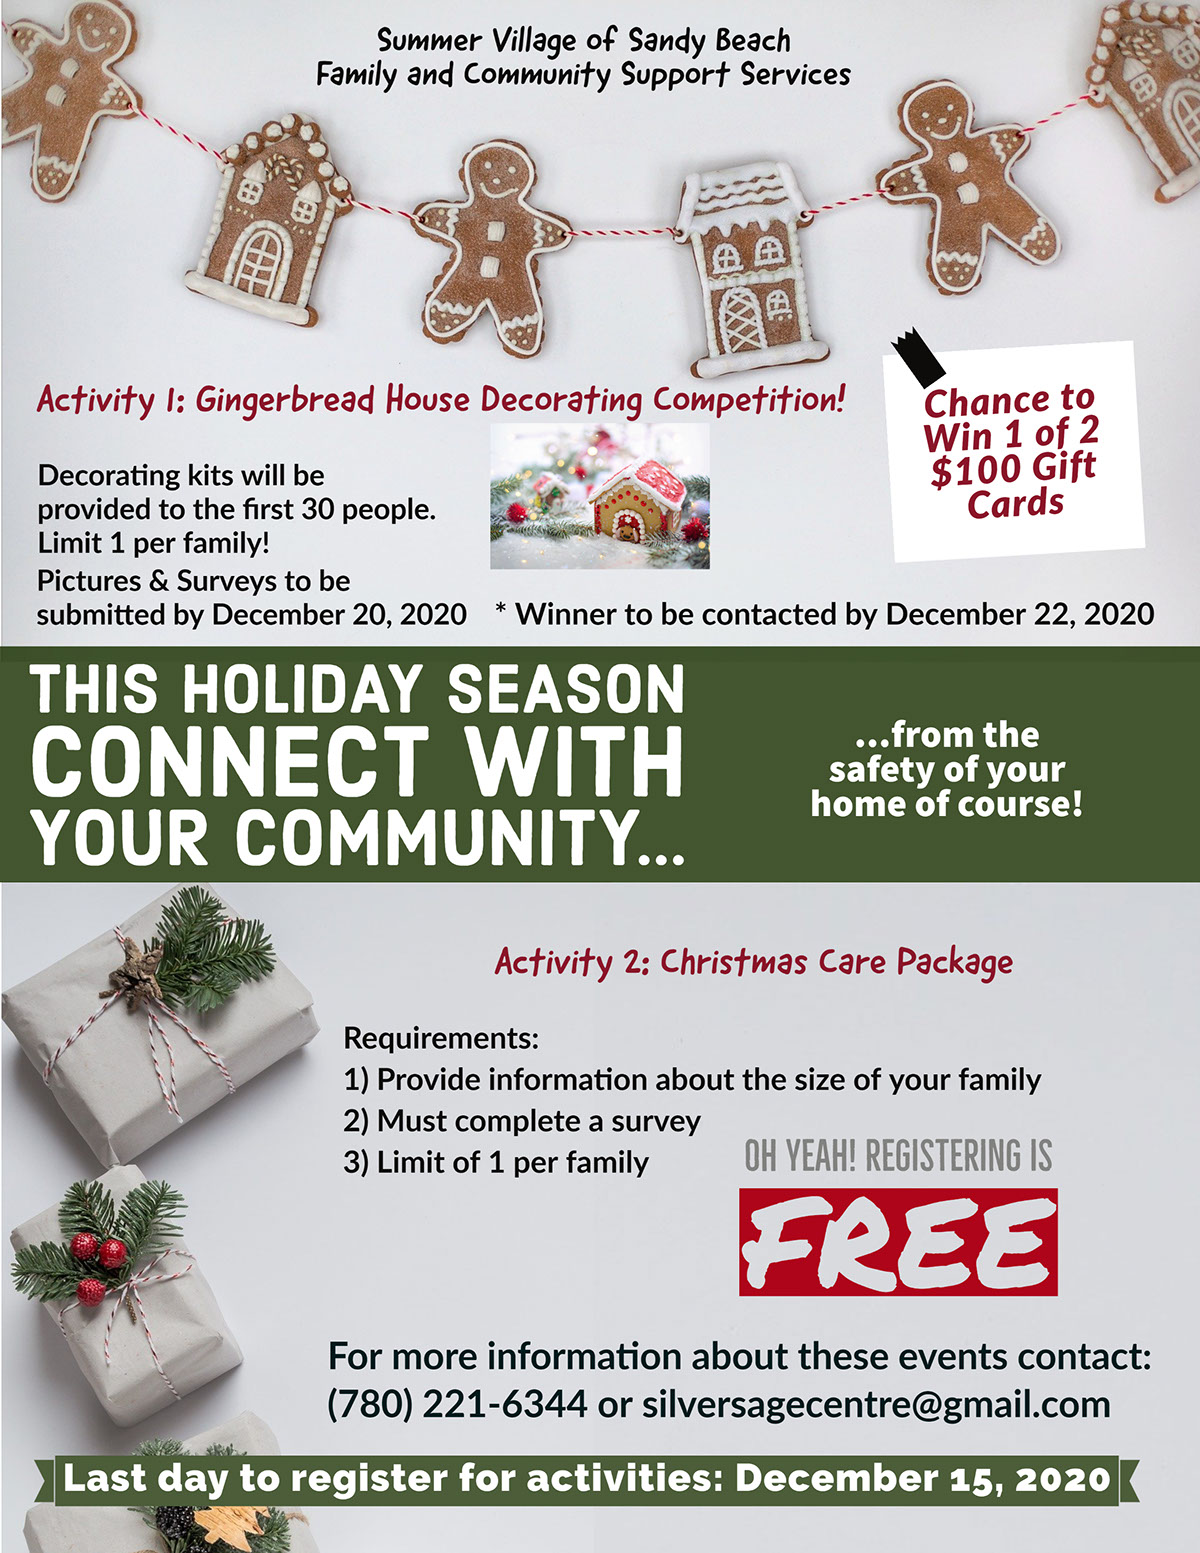 Connecting with Community This holiday season connect with your community... Oh yeah! Registering is Free Chance to Win 1 of 2 $100 Gift Cards Last day to register for activities: December 15, 2020 For more information about these events contact: (780) 221-6344 or silversagecentre@gmail.com Activity 1: Gingerbread House Decorating Competition! ...from the safety of your home of course! Activity 2: Christmas Care Package Summer Village of Sandy Beach Family and Community Support Services * Winner to be contacted by December 22, 2020 Requirements: 1) Provide information about the size of your family 2) Must complete a survey 3) Limit of 1 per family Pictures & Surveys to be submitted by December 20, 2020 Decorating kits will be provided to the first 30 people. Limit 1 per family!